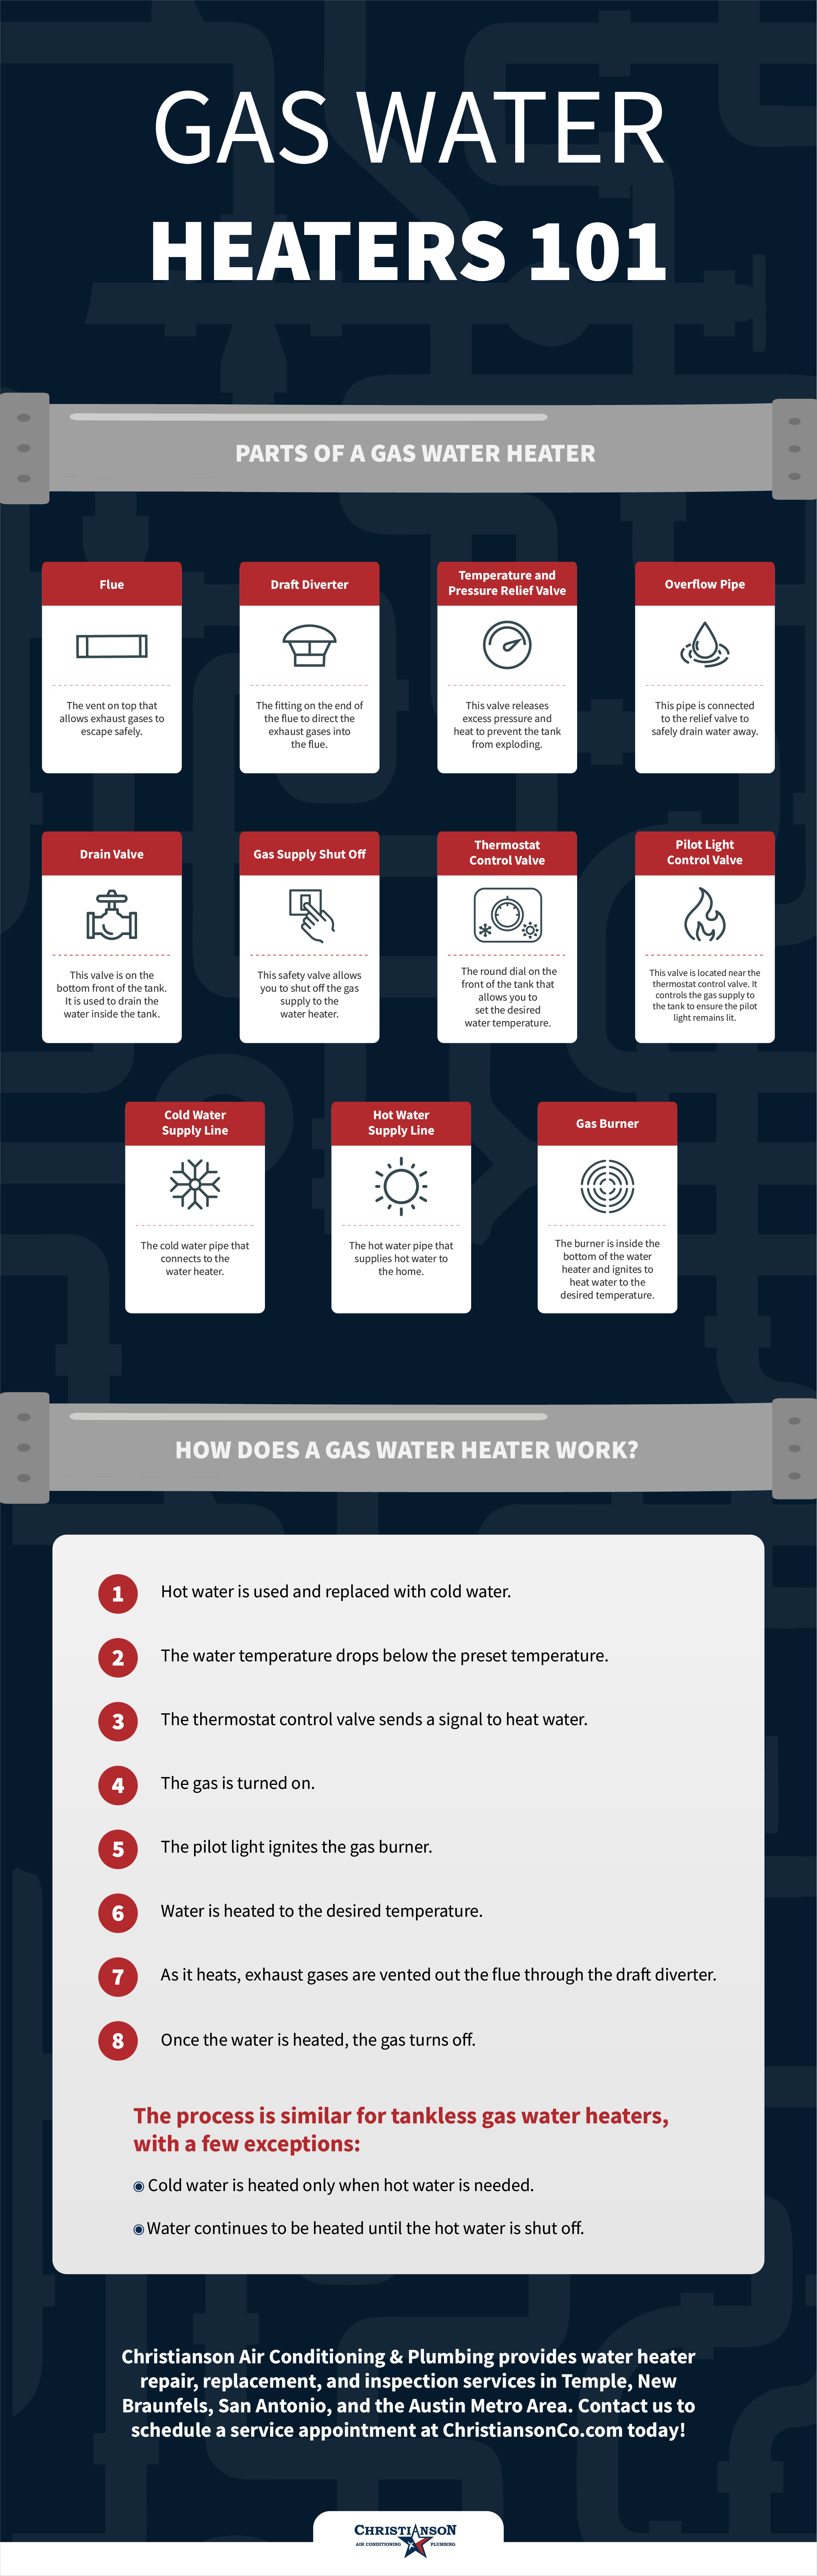 Gas Water Heaters 101 Infographic